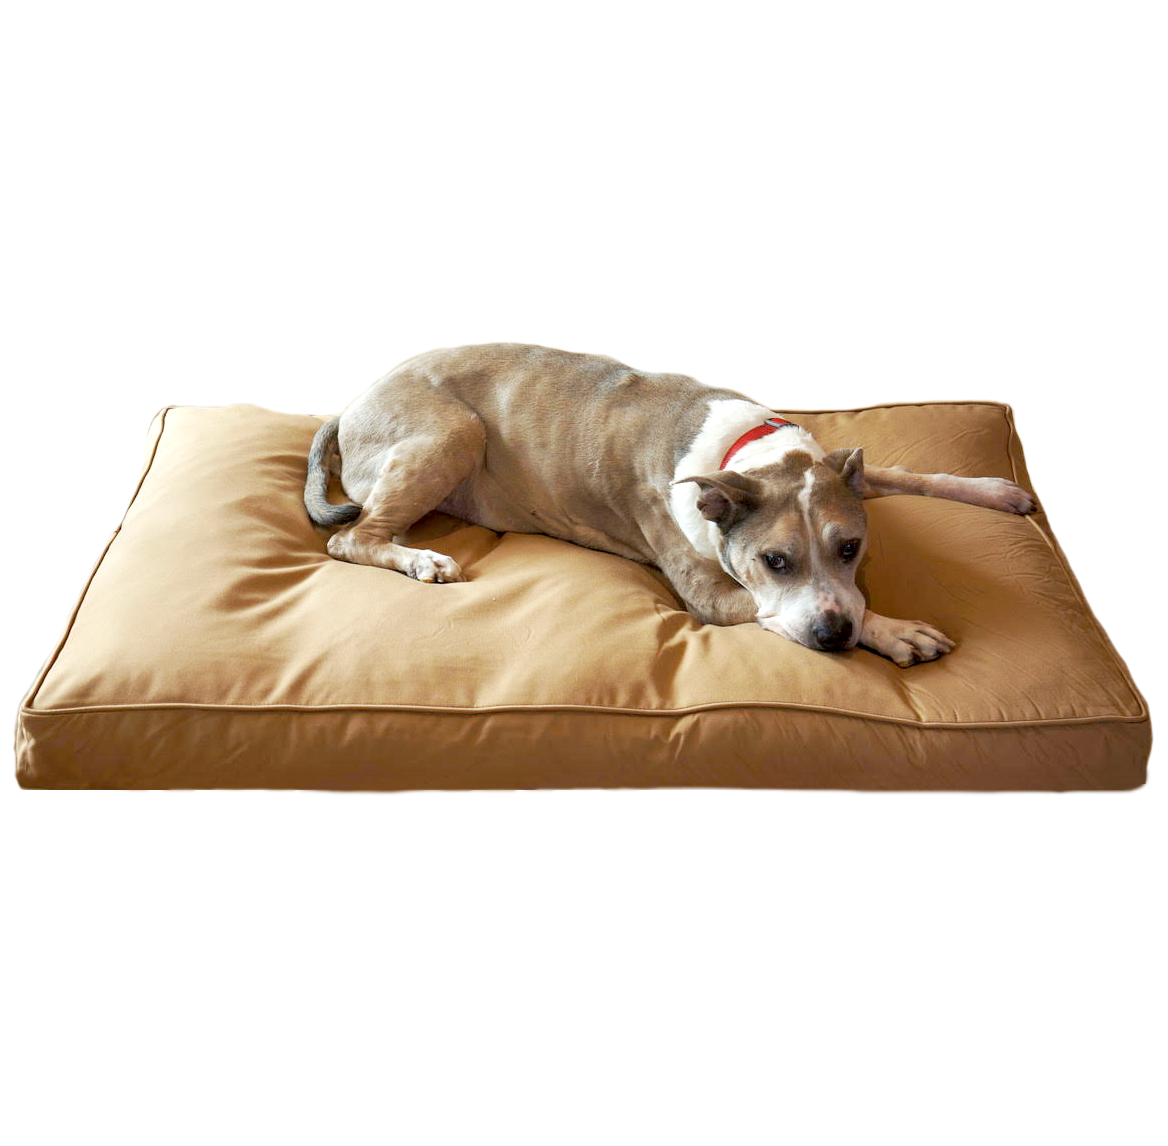 Chew Resistant Dog Bed With 200 Day Guarantee Dog bed